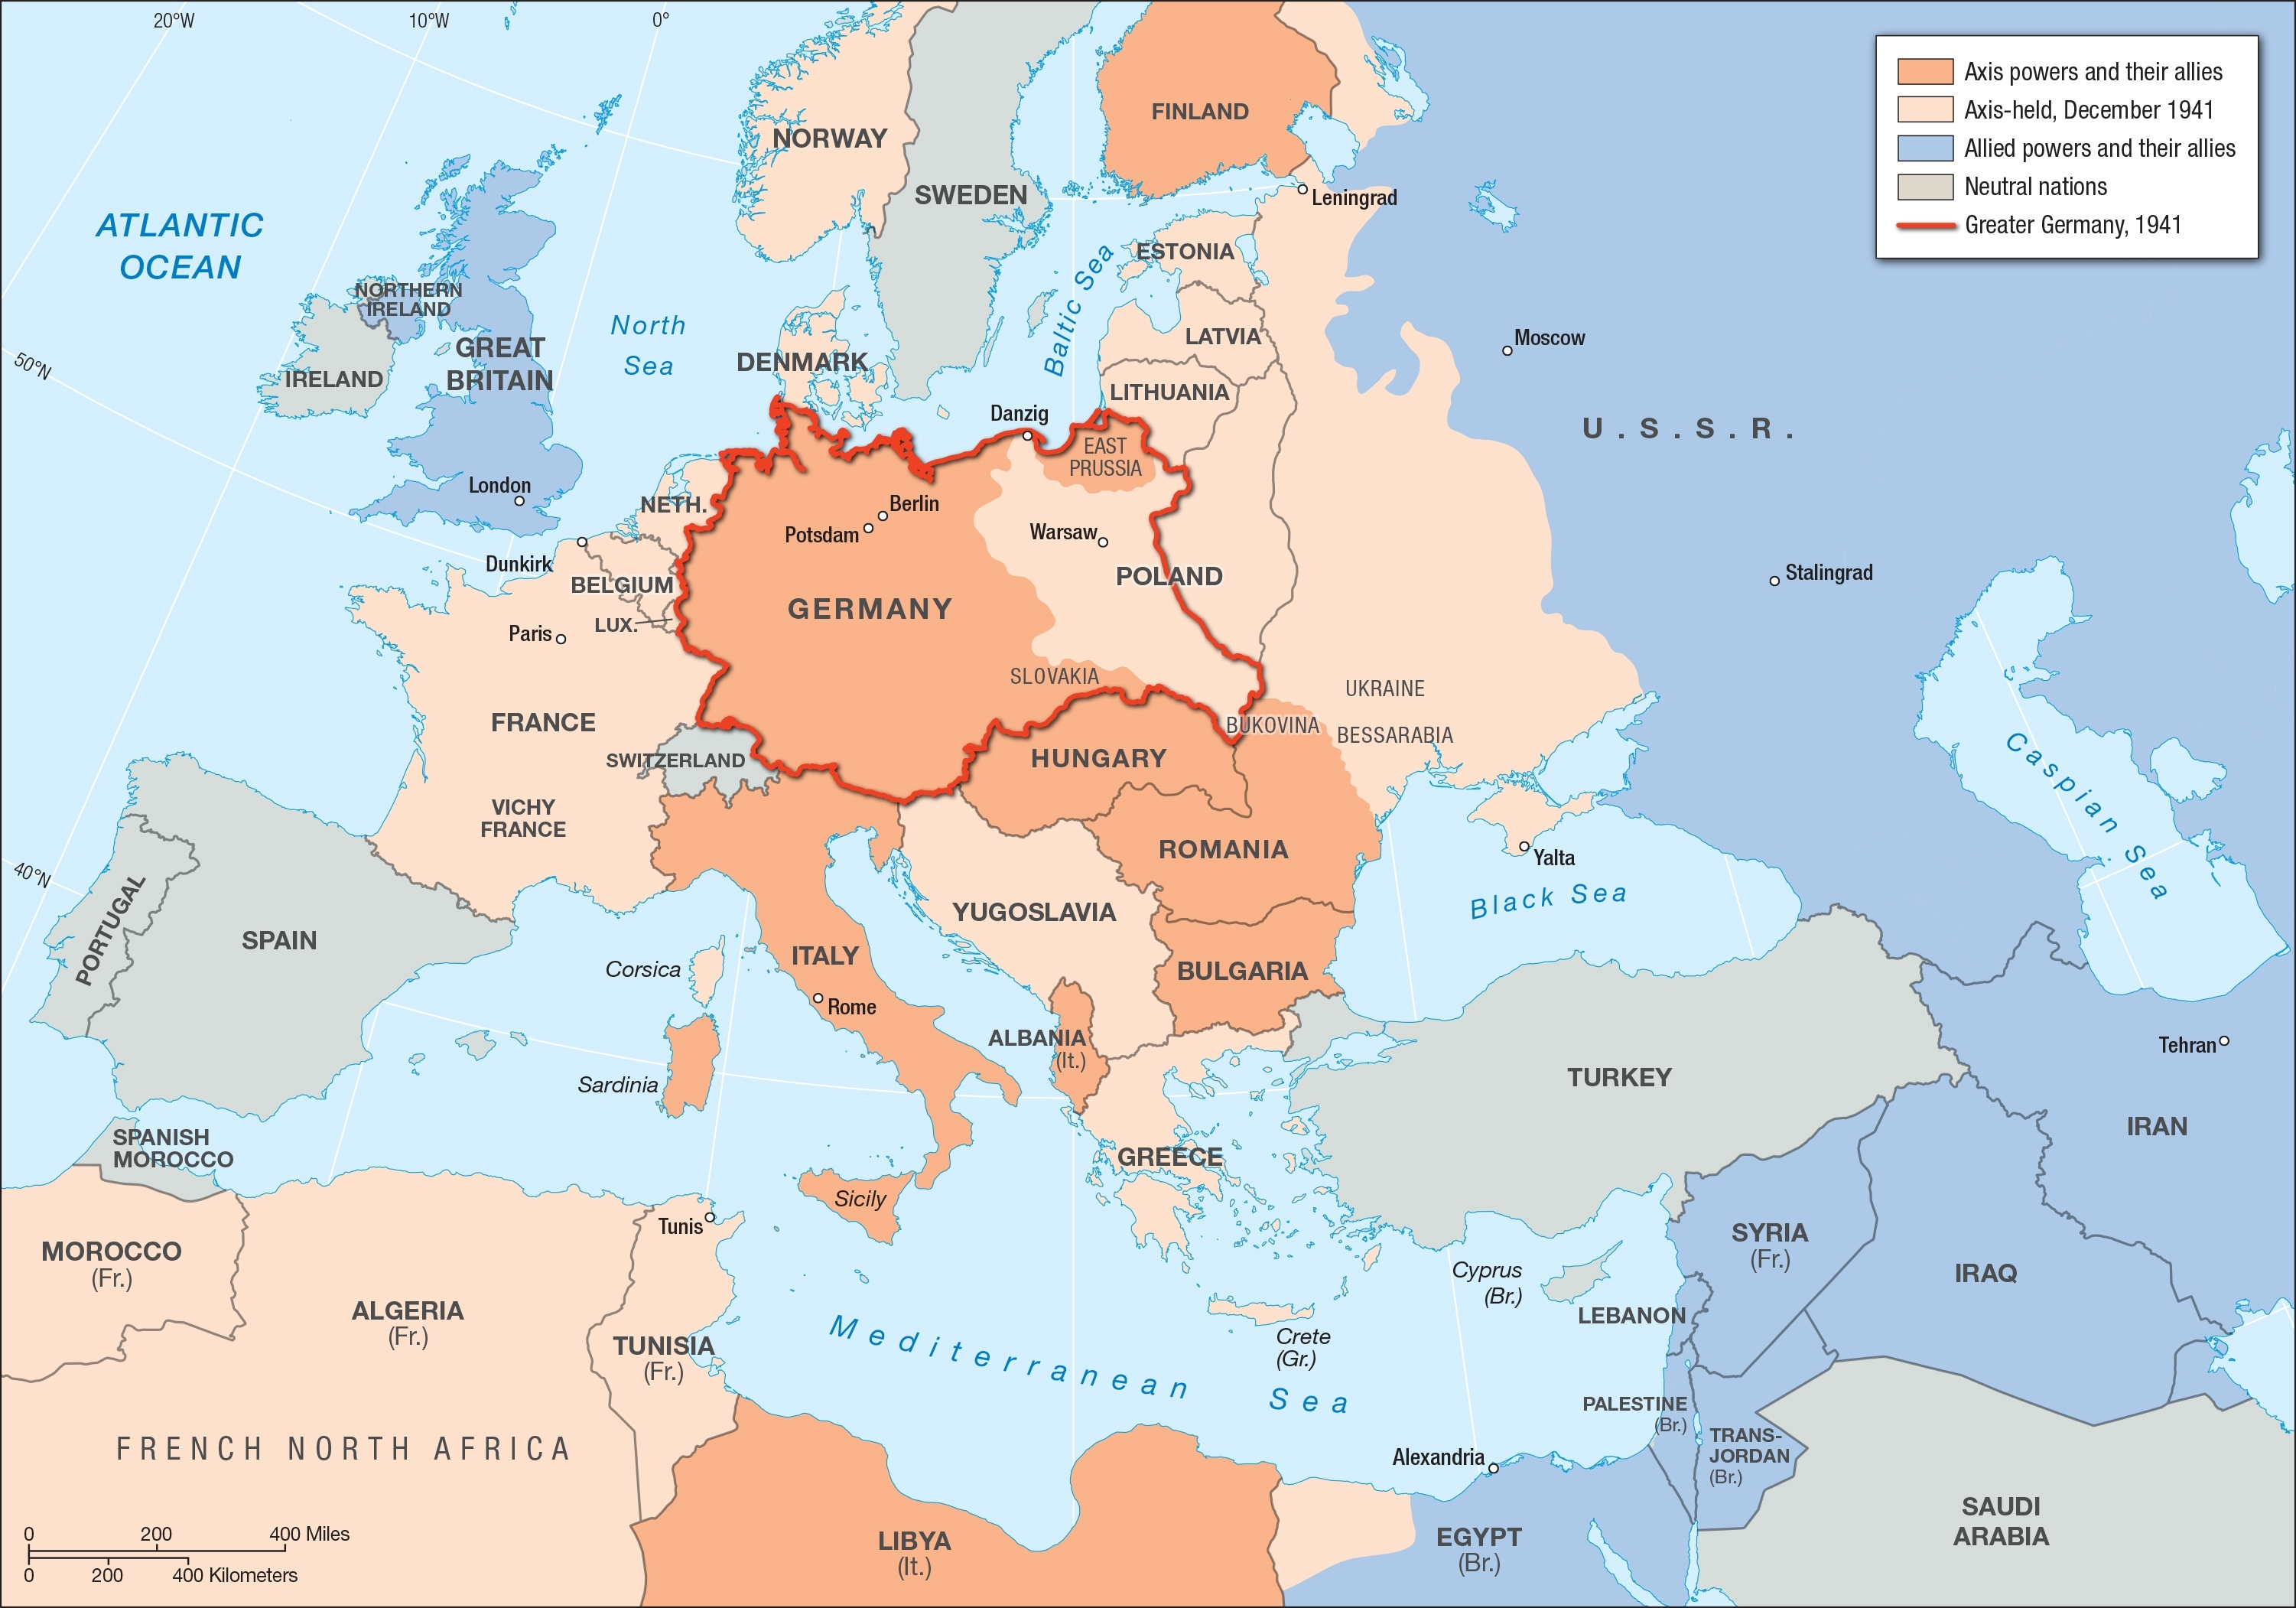 Europe In Germany's Grasp   Facing History And Ourselves intended for Map Of Germany Before And After Ww2